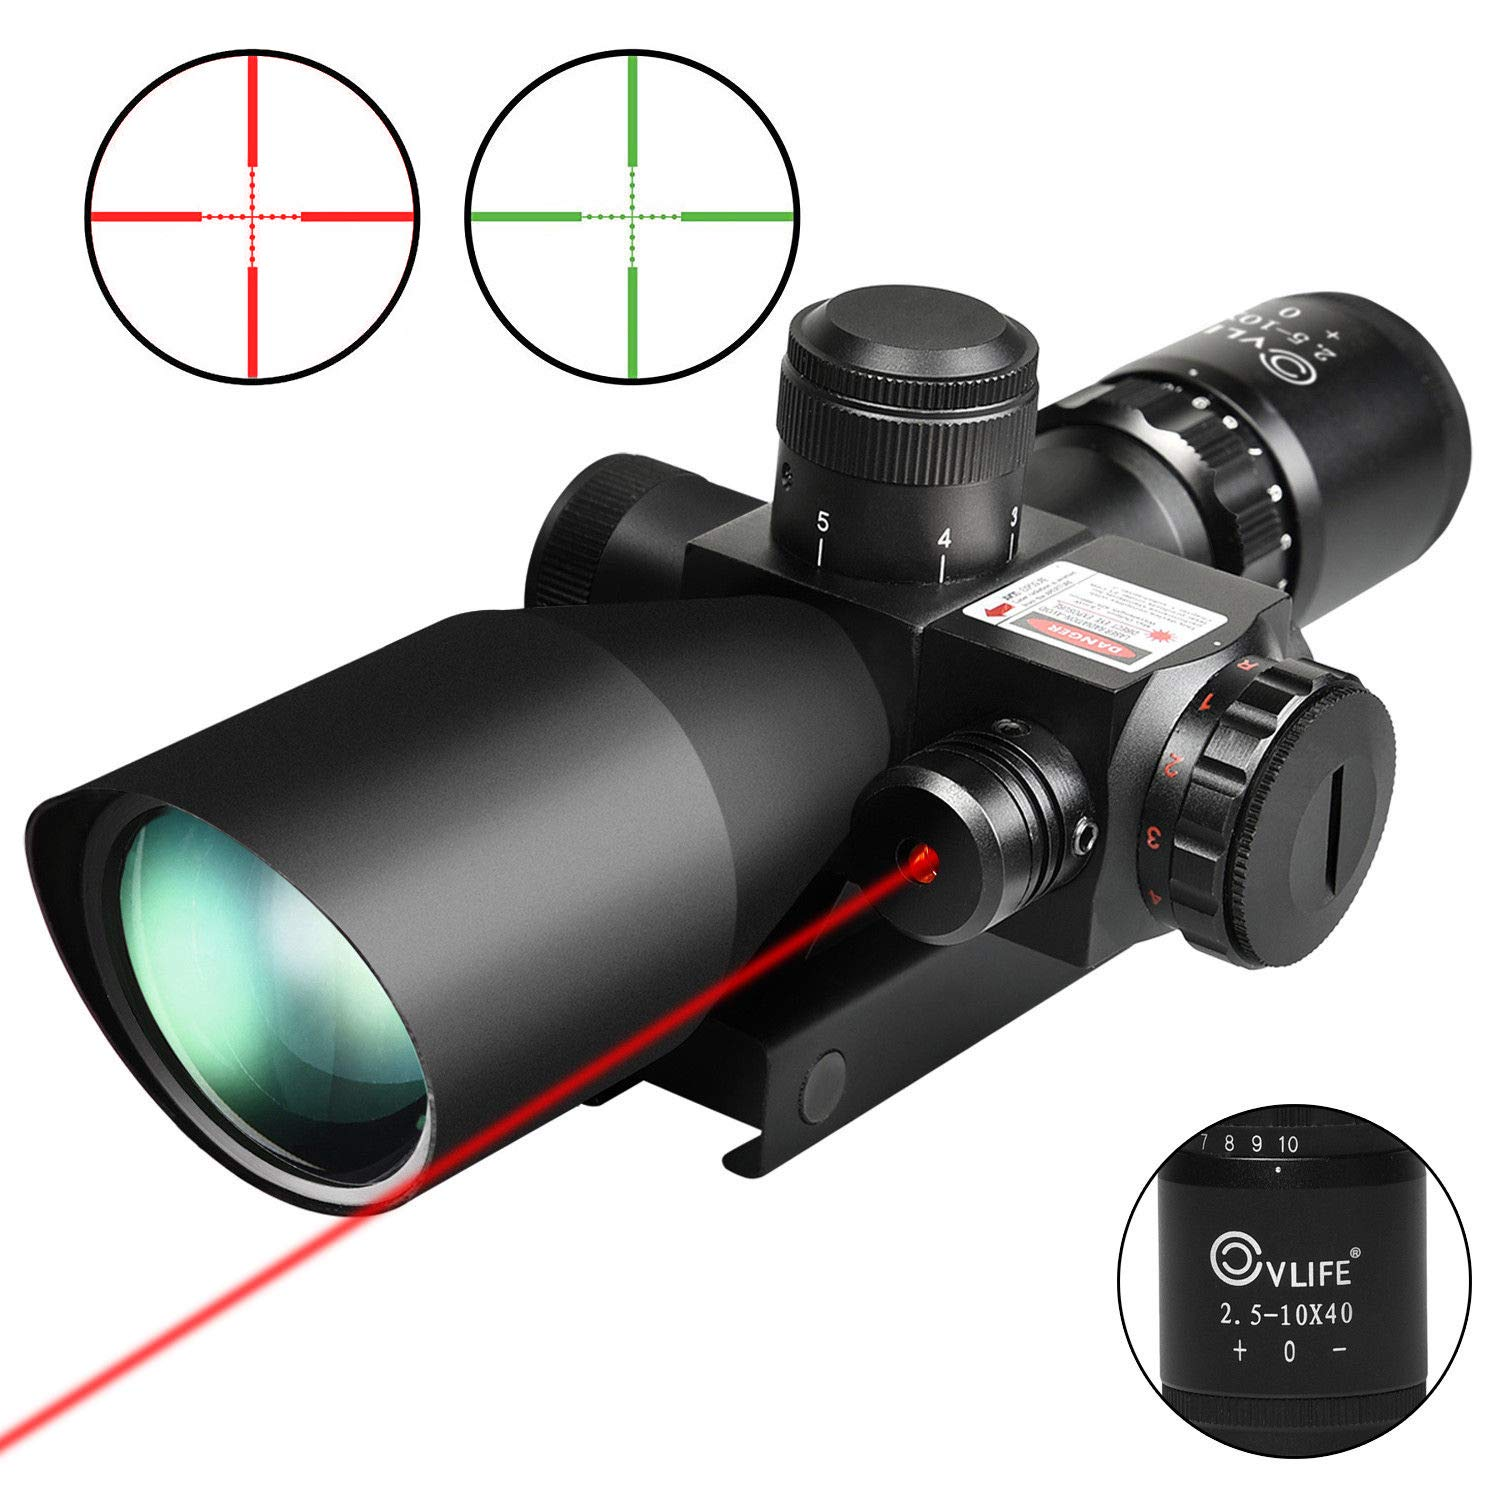 cvlife scope pros and cons